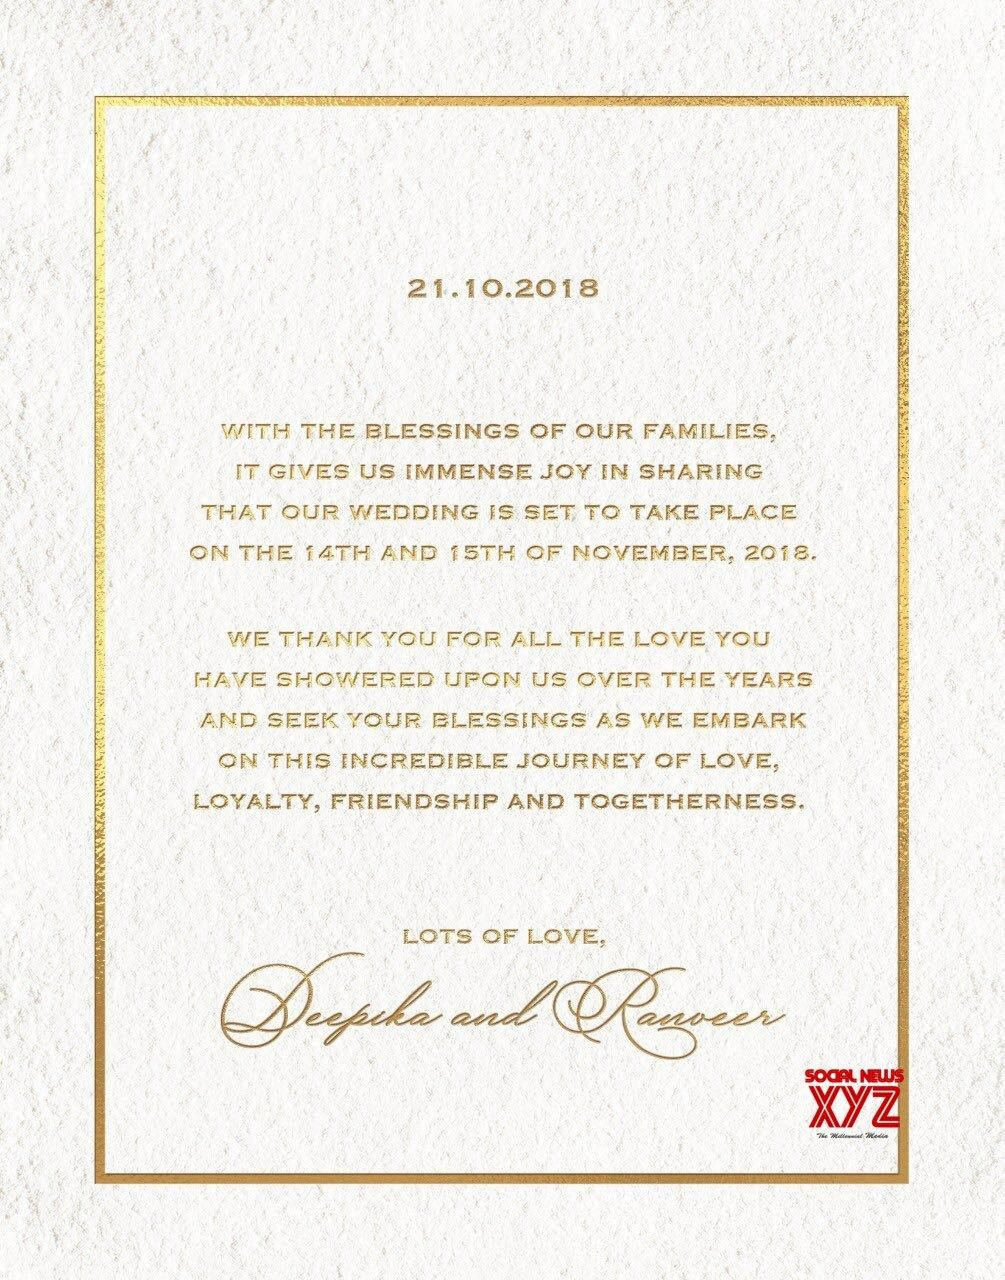 Deepika Padukone And Ranveer Singh Wedding Invitation Cards Social News Xyz Wedding Invitation Cards Deepika Padukone Big Wedding